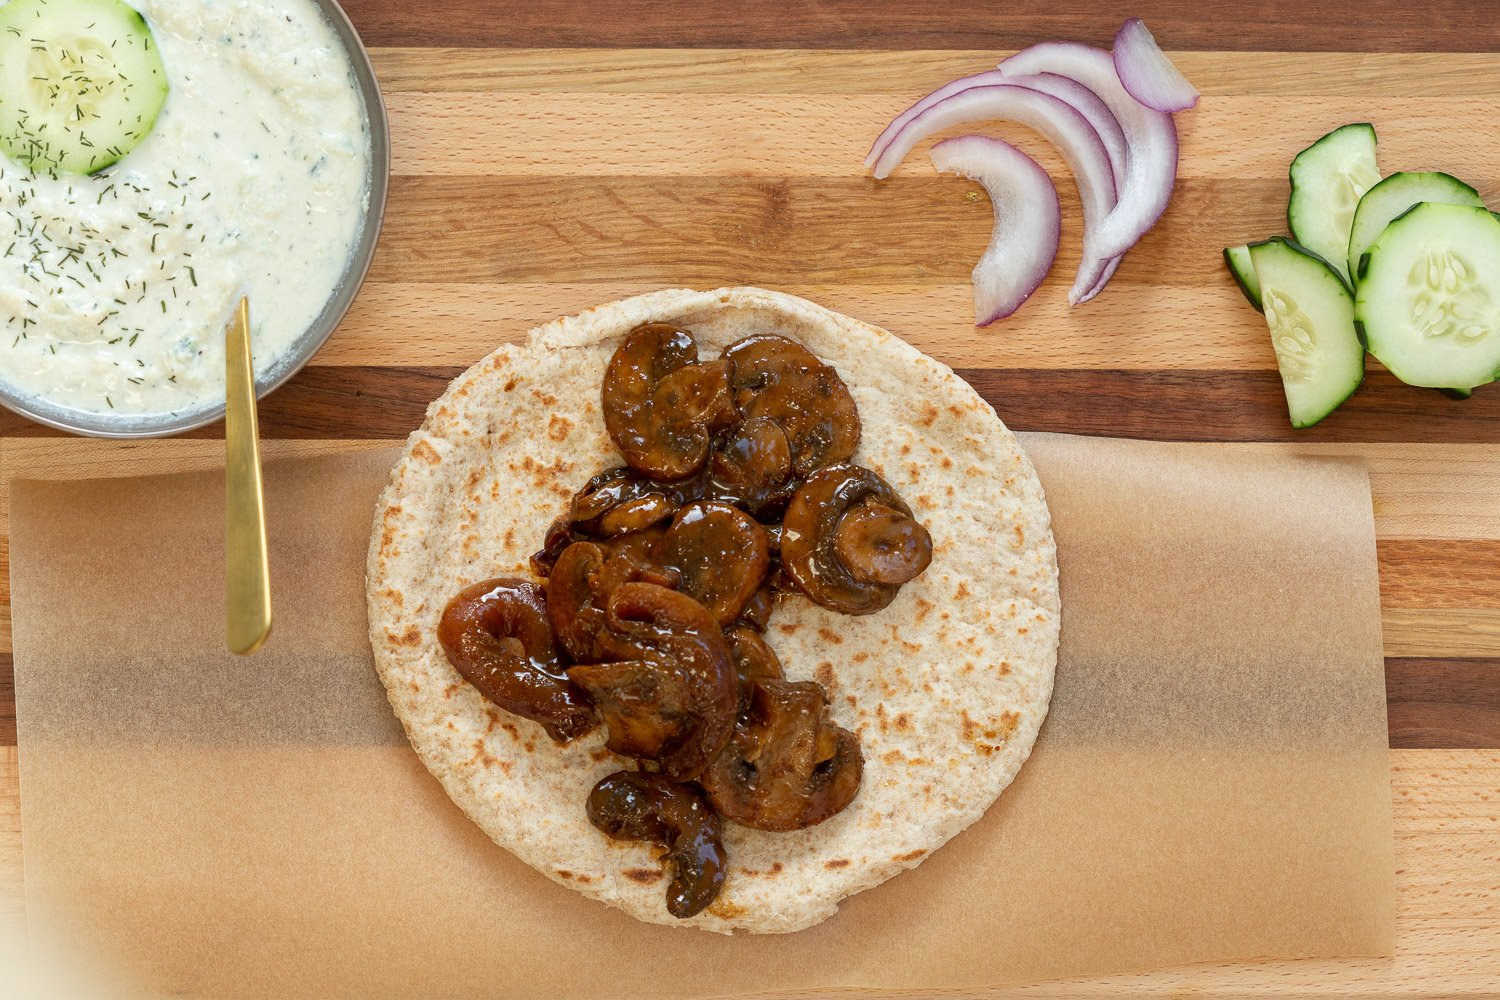 Assembly of Vegan Gyros with Mushrooms and tzatziki on Wood Board